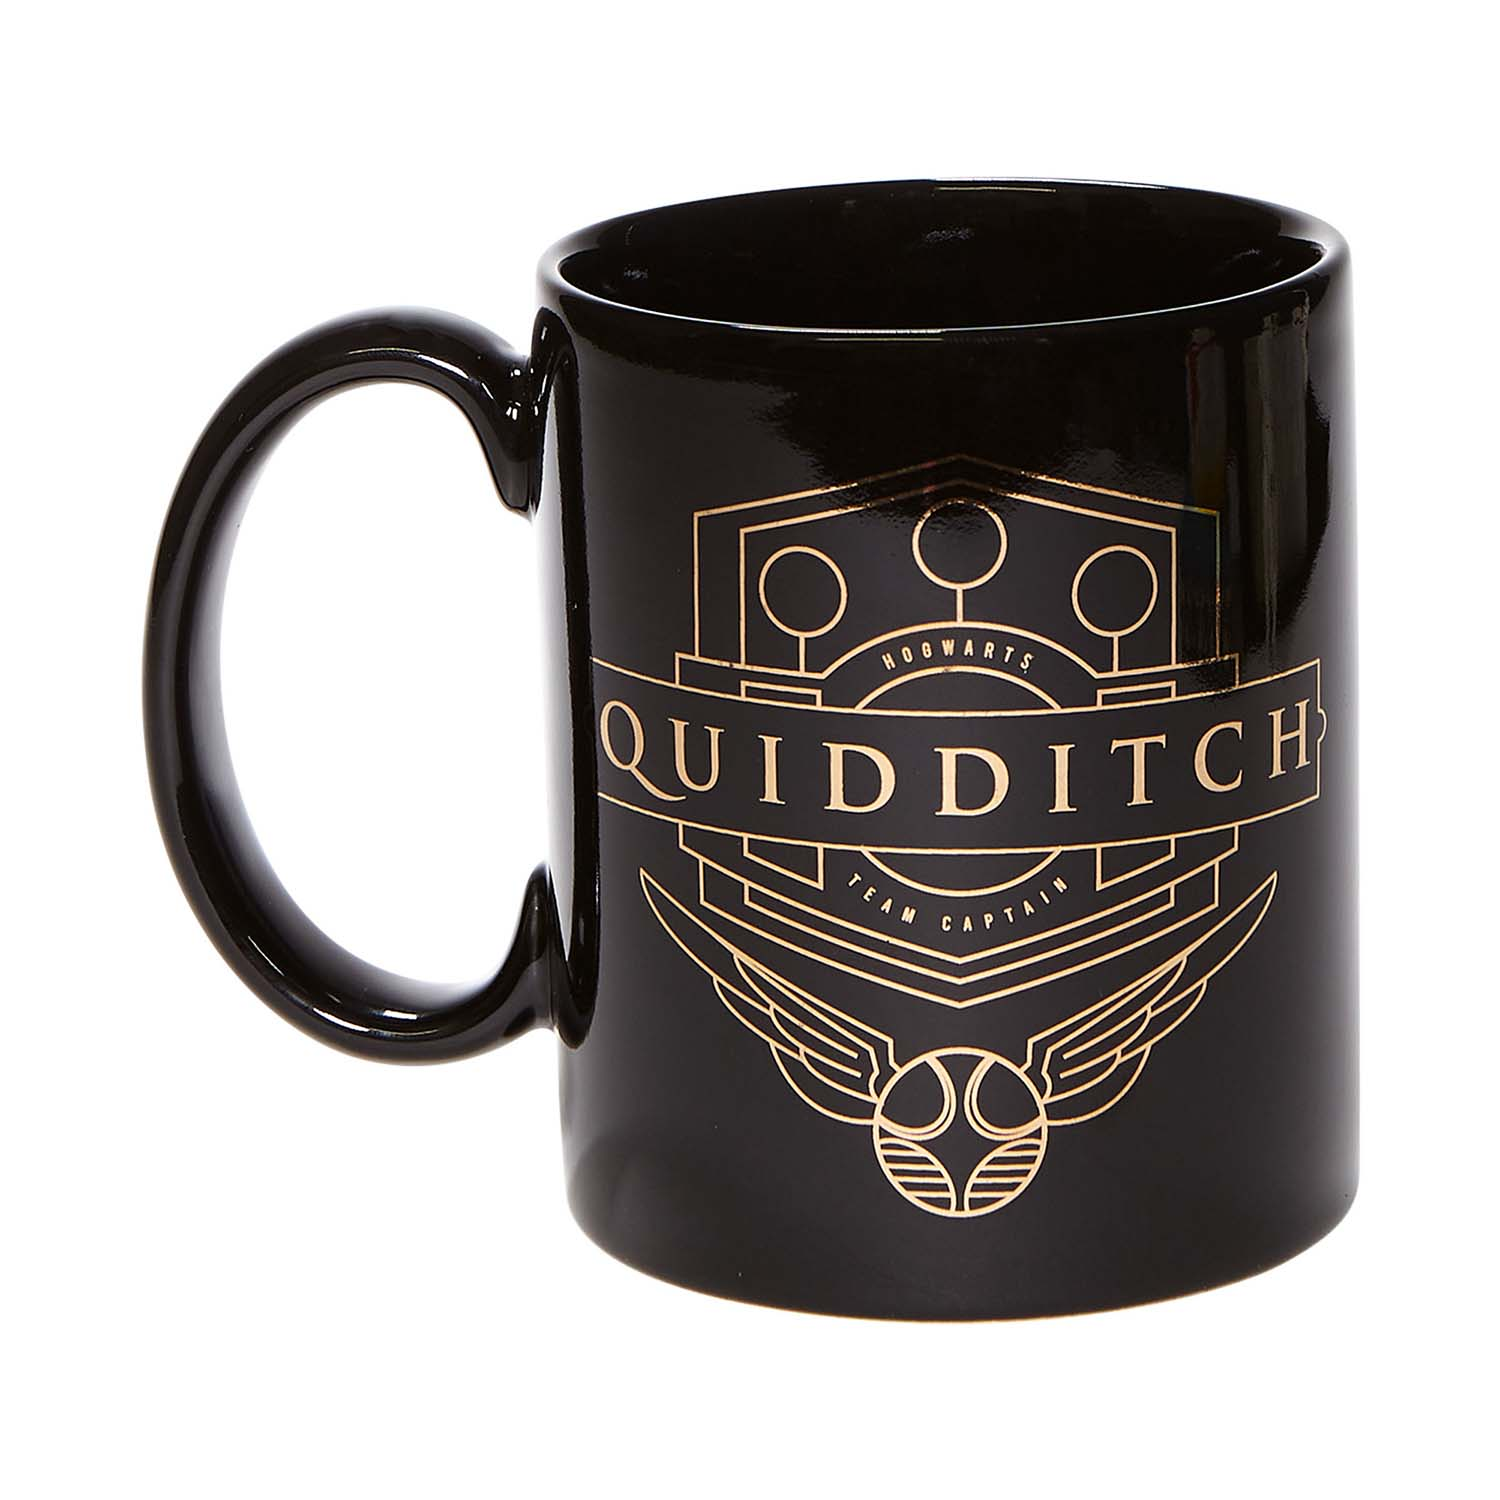 Universal Coffee Cup Mug - Harry Potter - Quidditch Gold